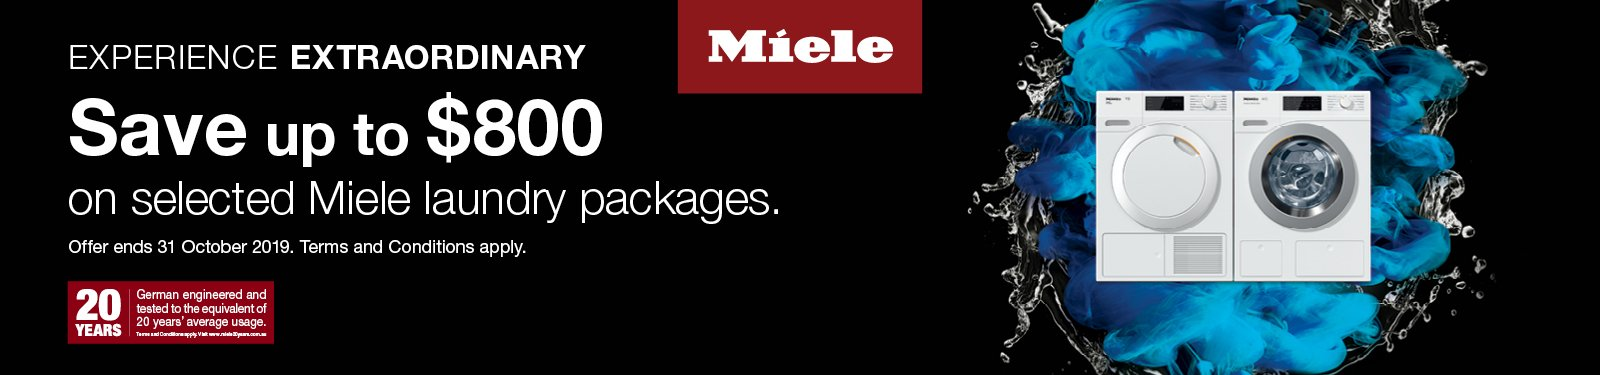 Miele Save Up To $800 On Selected Laundry Packages